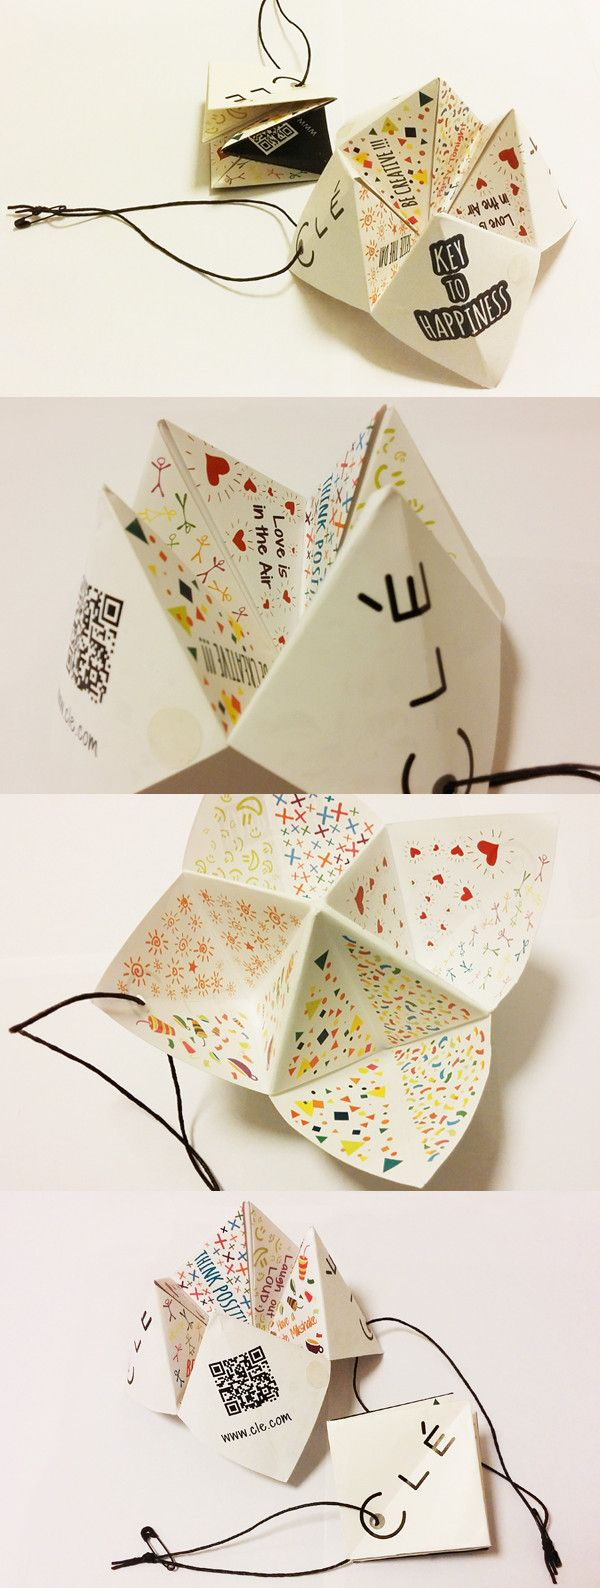 Creative Designs and Shapes of Hang Tags for Inspiration | Xia Feng | LinkedIn